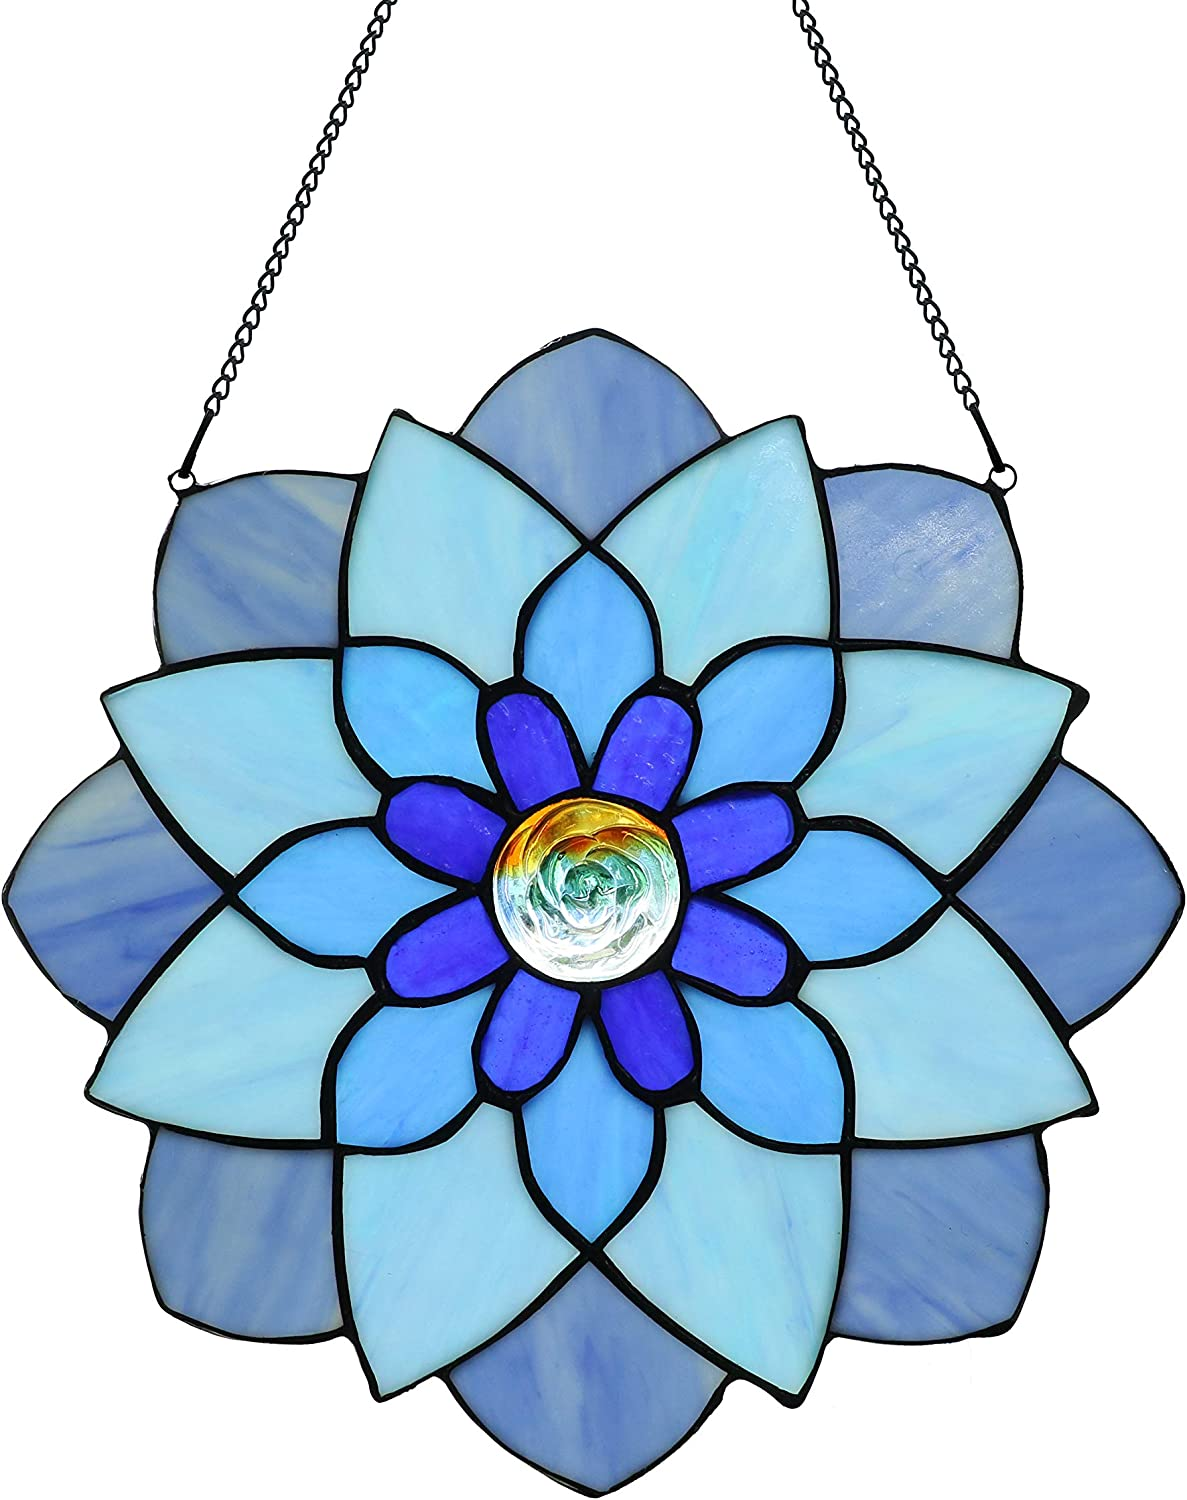 12 Inch In stock Round Stained Glass New Orleans Mall Ornament Tiffany Window Style Panel